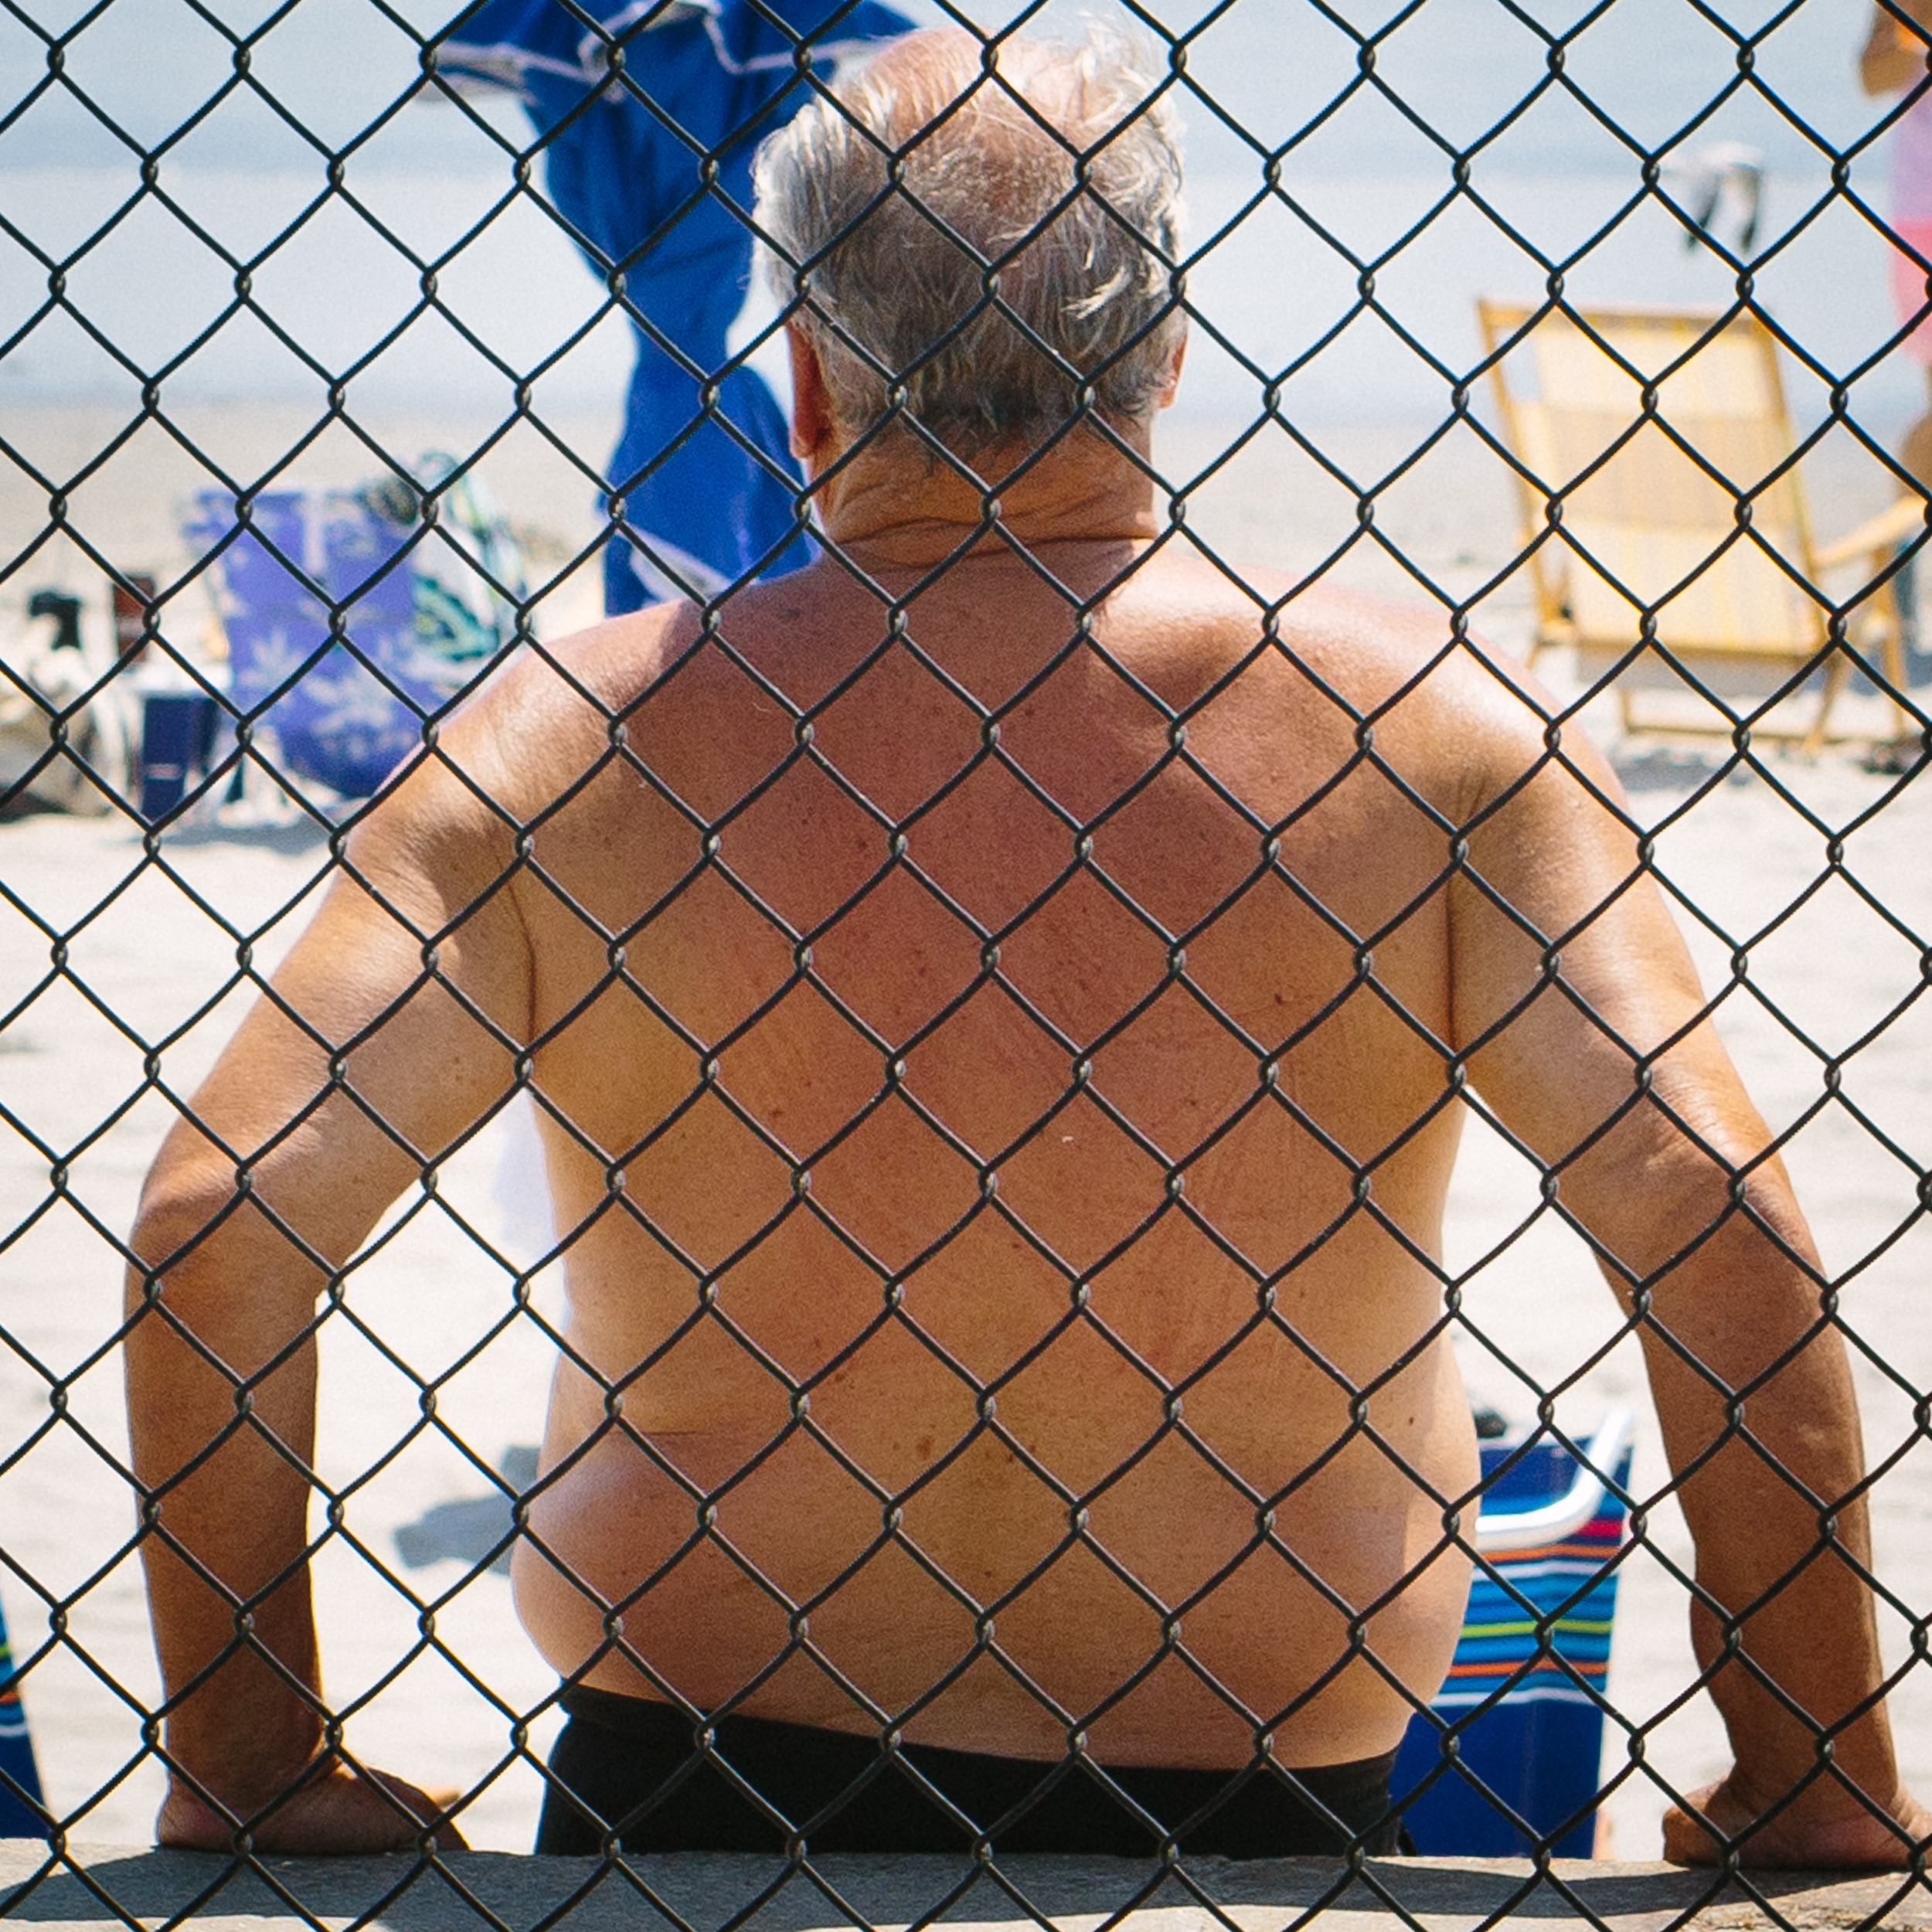 Middle-aged man through chain link fence